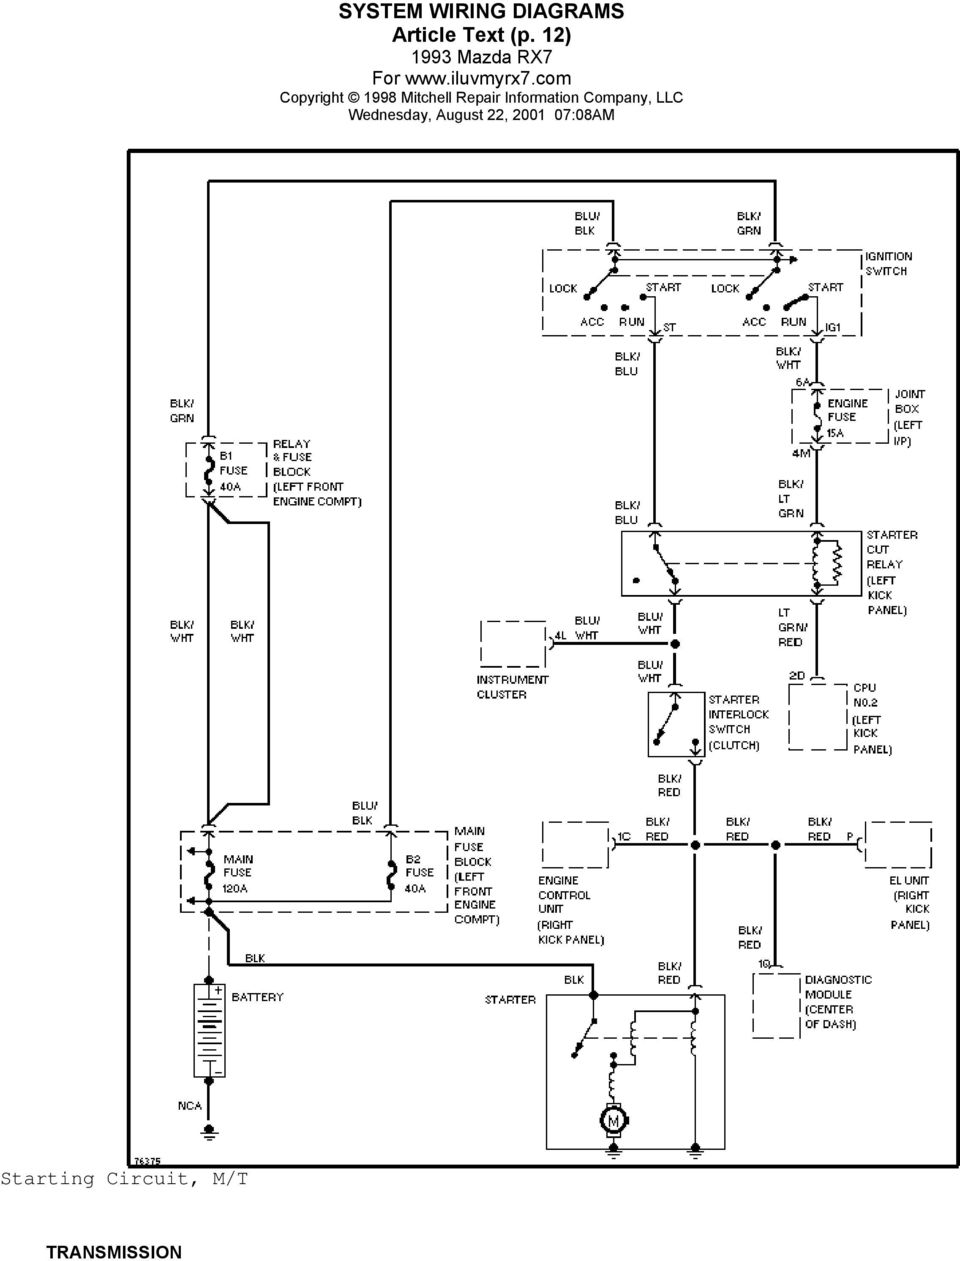 medium resolution of 14 system wiring diagrams article text p 13 transmission circuit wiper washer